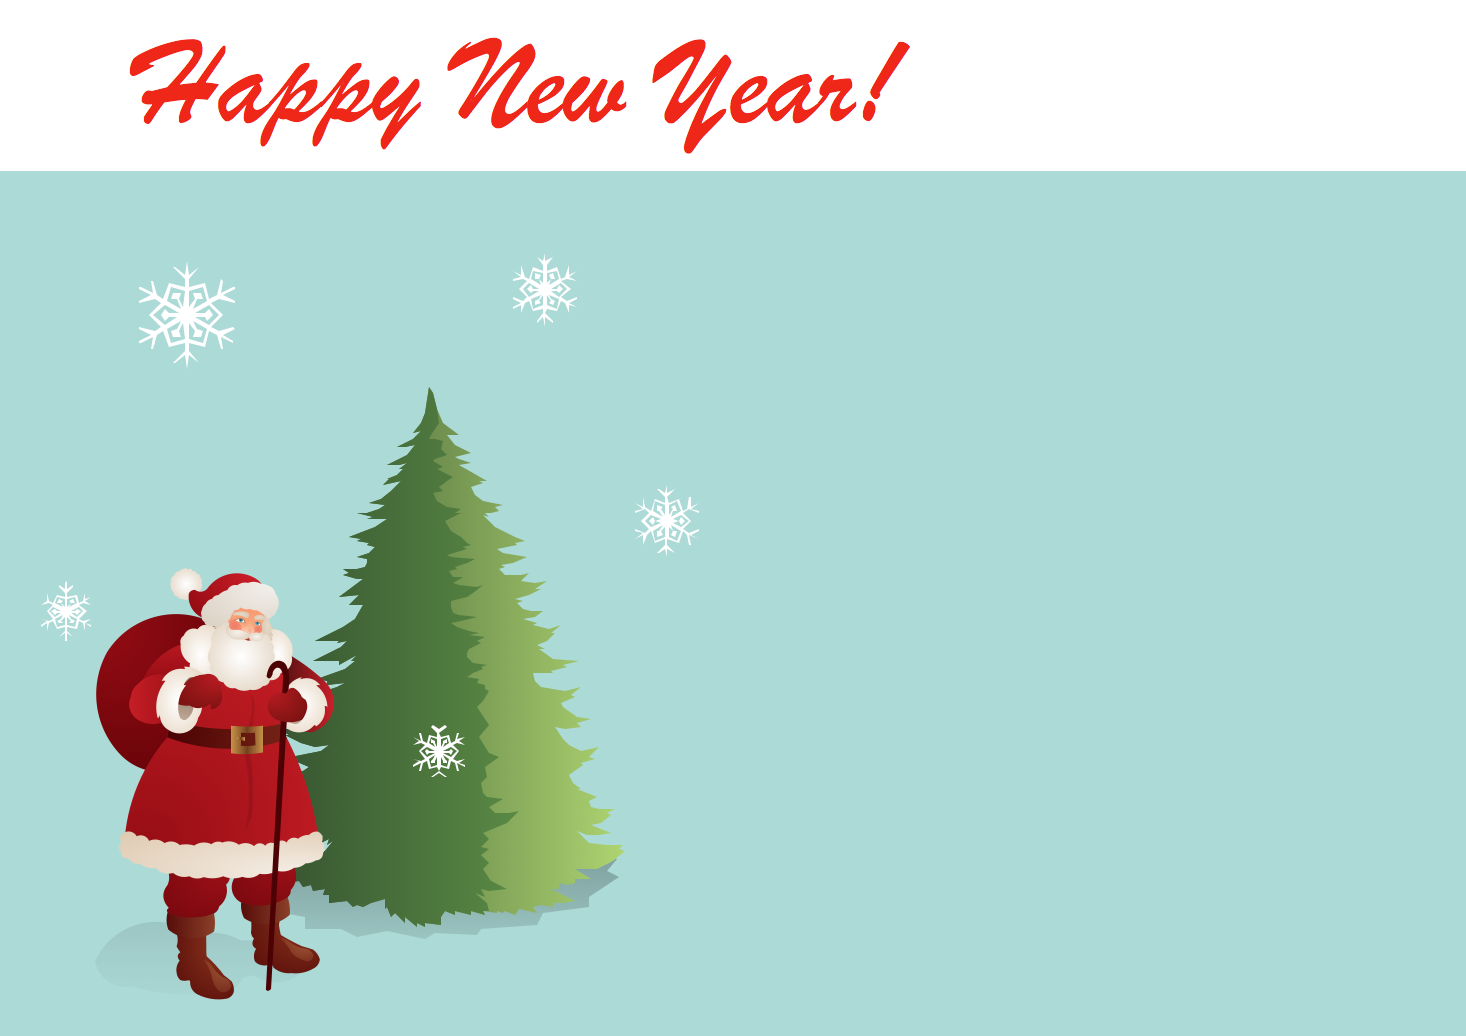 New Year Card Template. Santa Claus near a Christmas tree